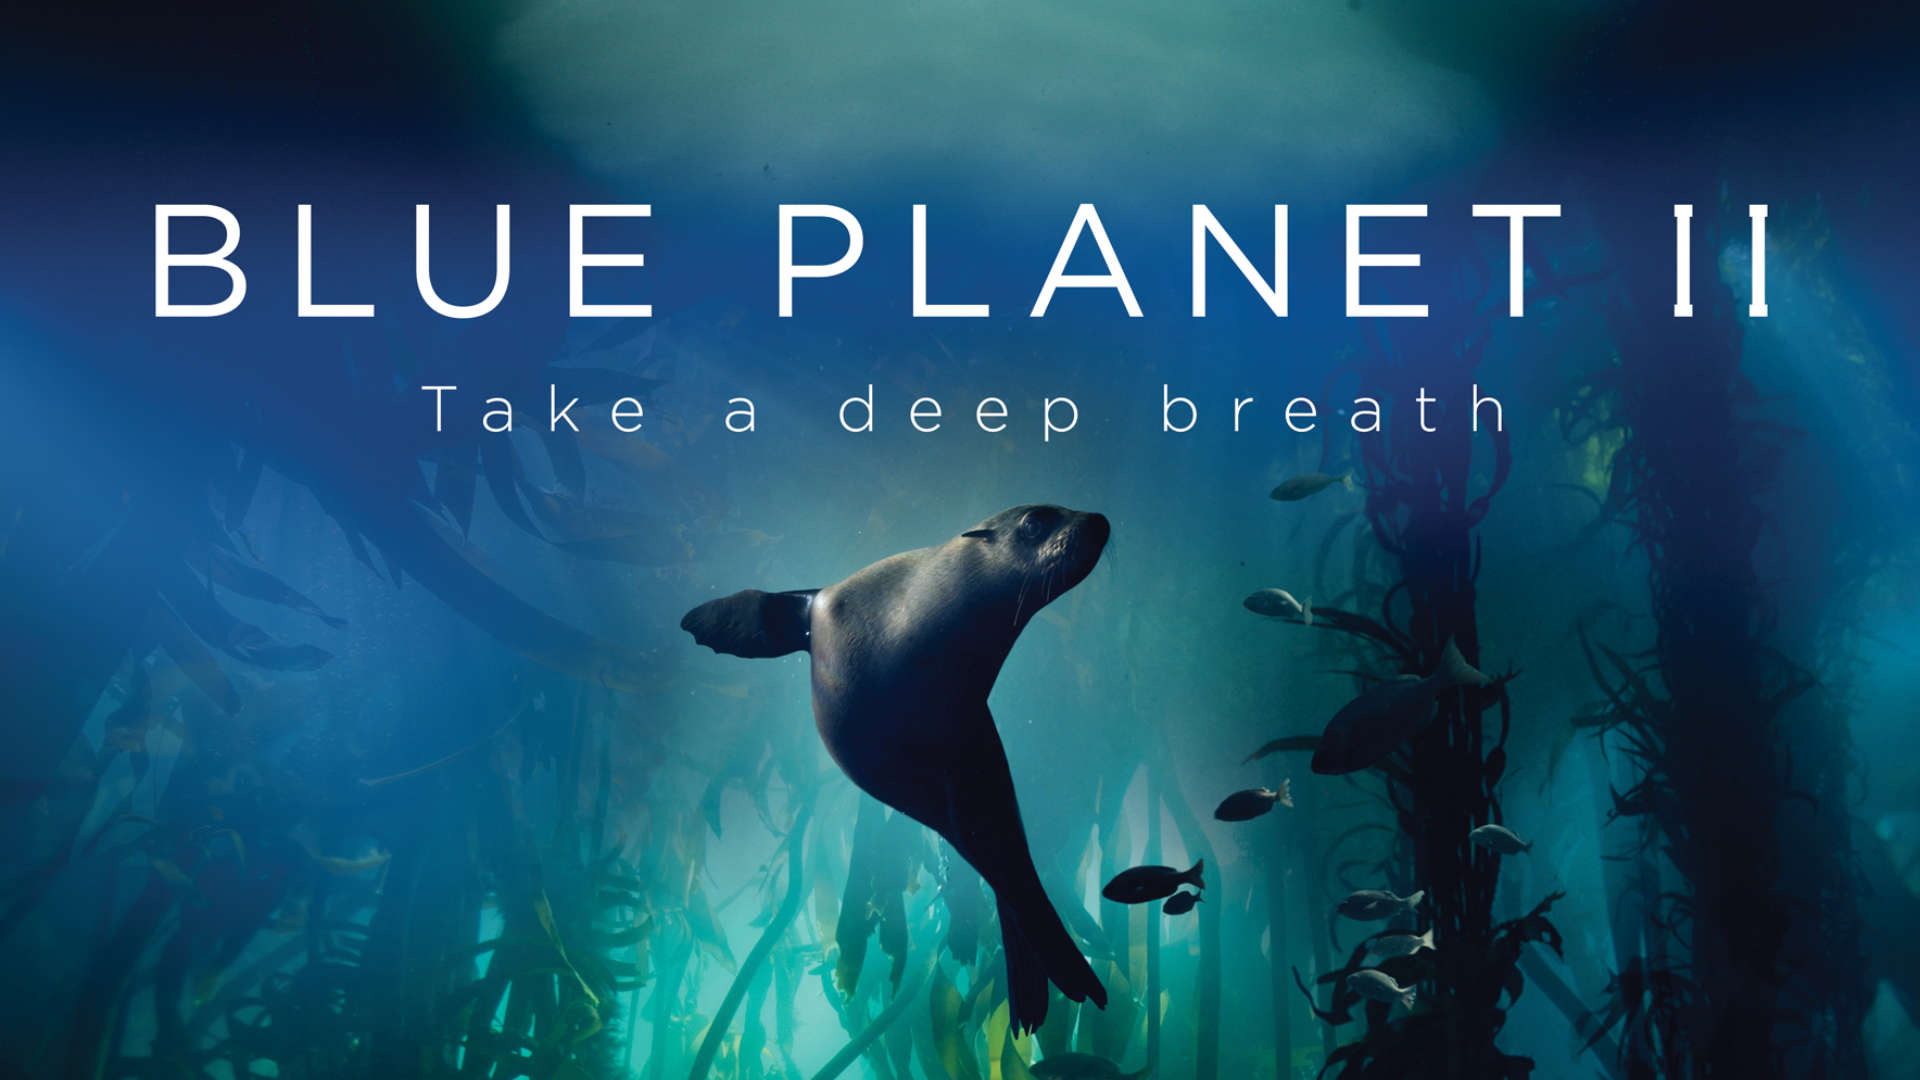 Blue Planet graphics and branding by BDH Creative